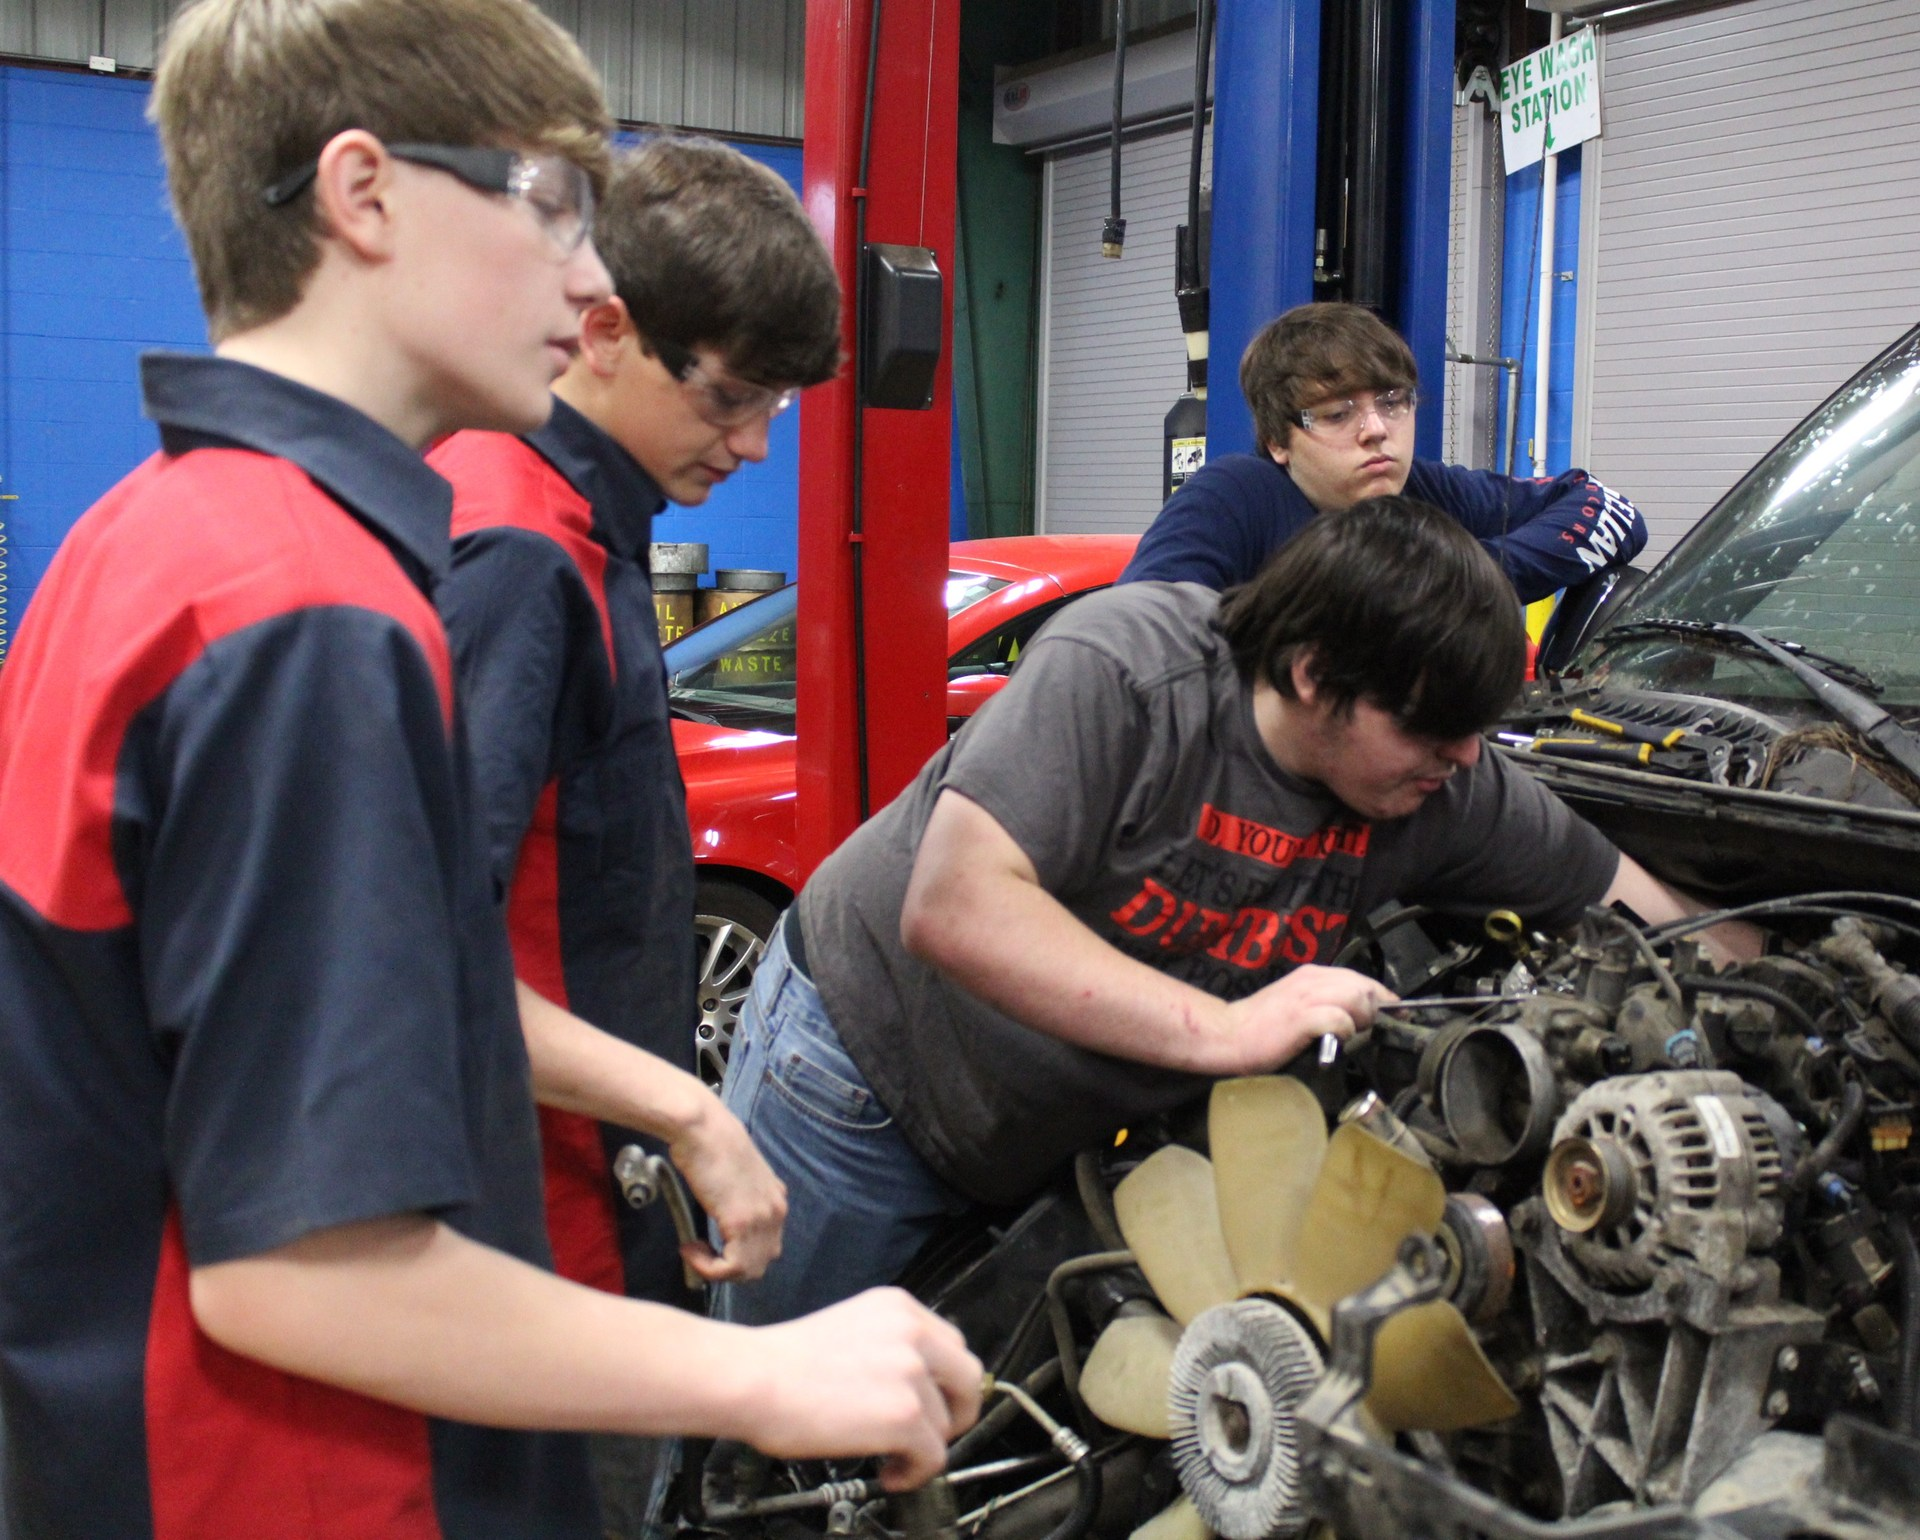 Auto students in the shop.